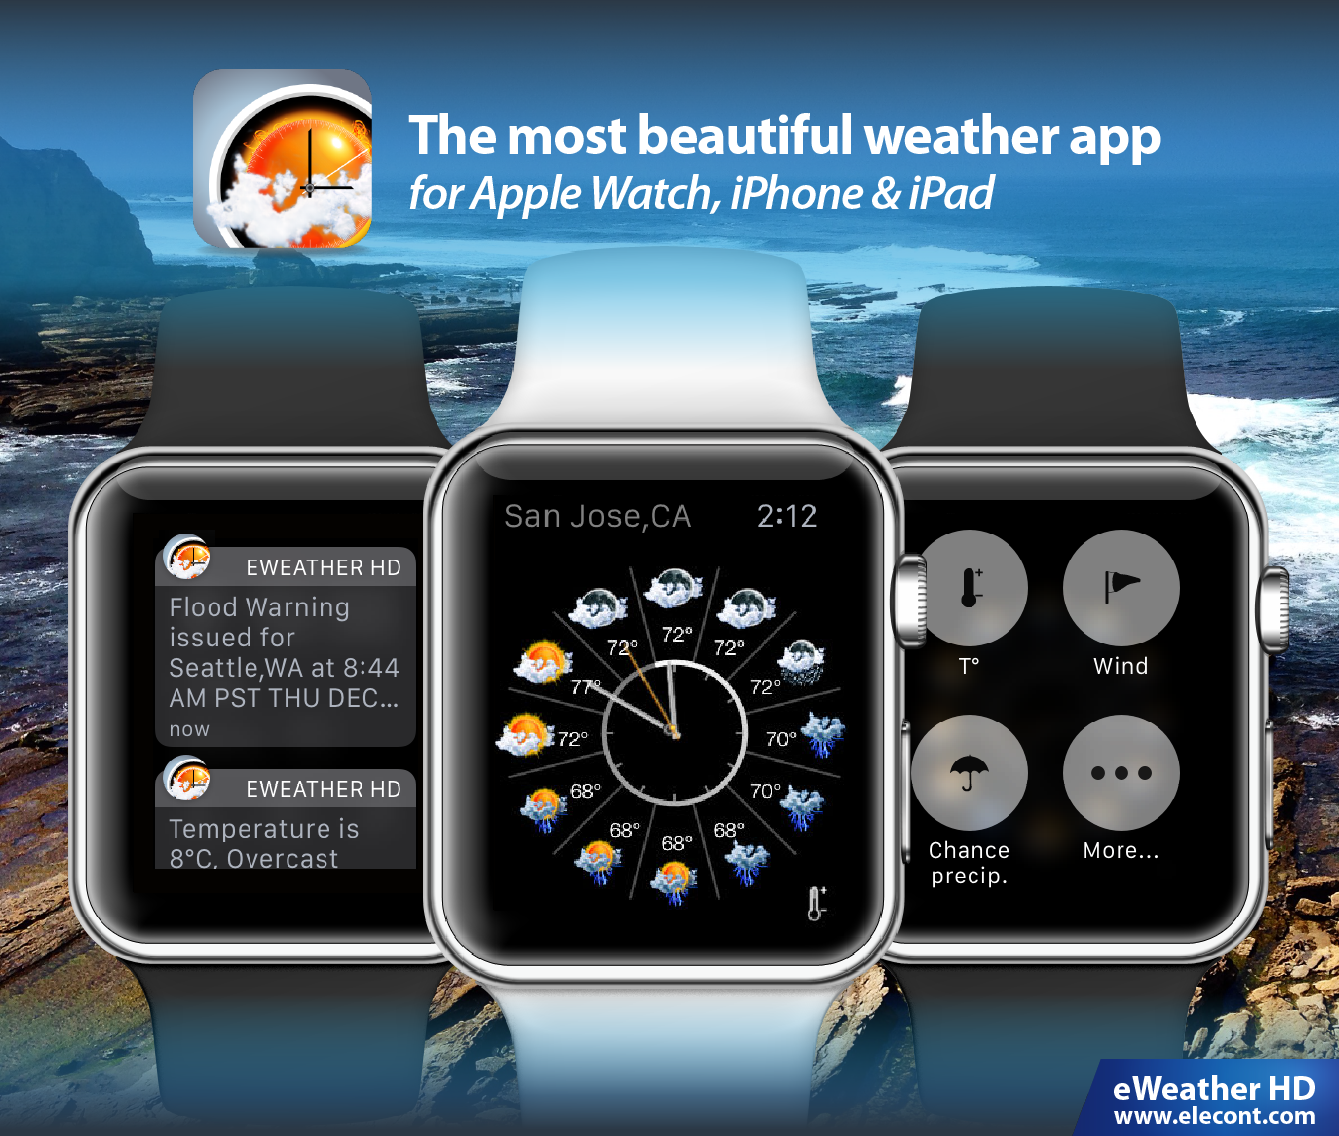 weather-app-apple-watch-iphone-ipad-aler